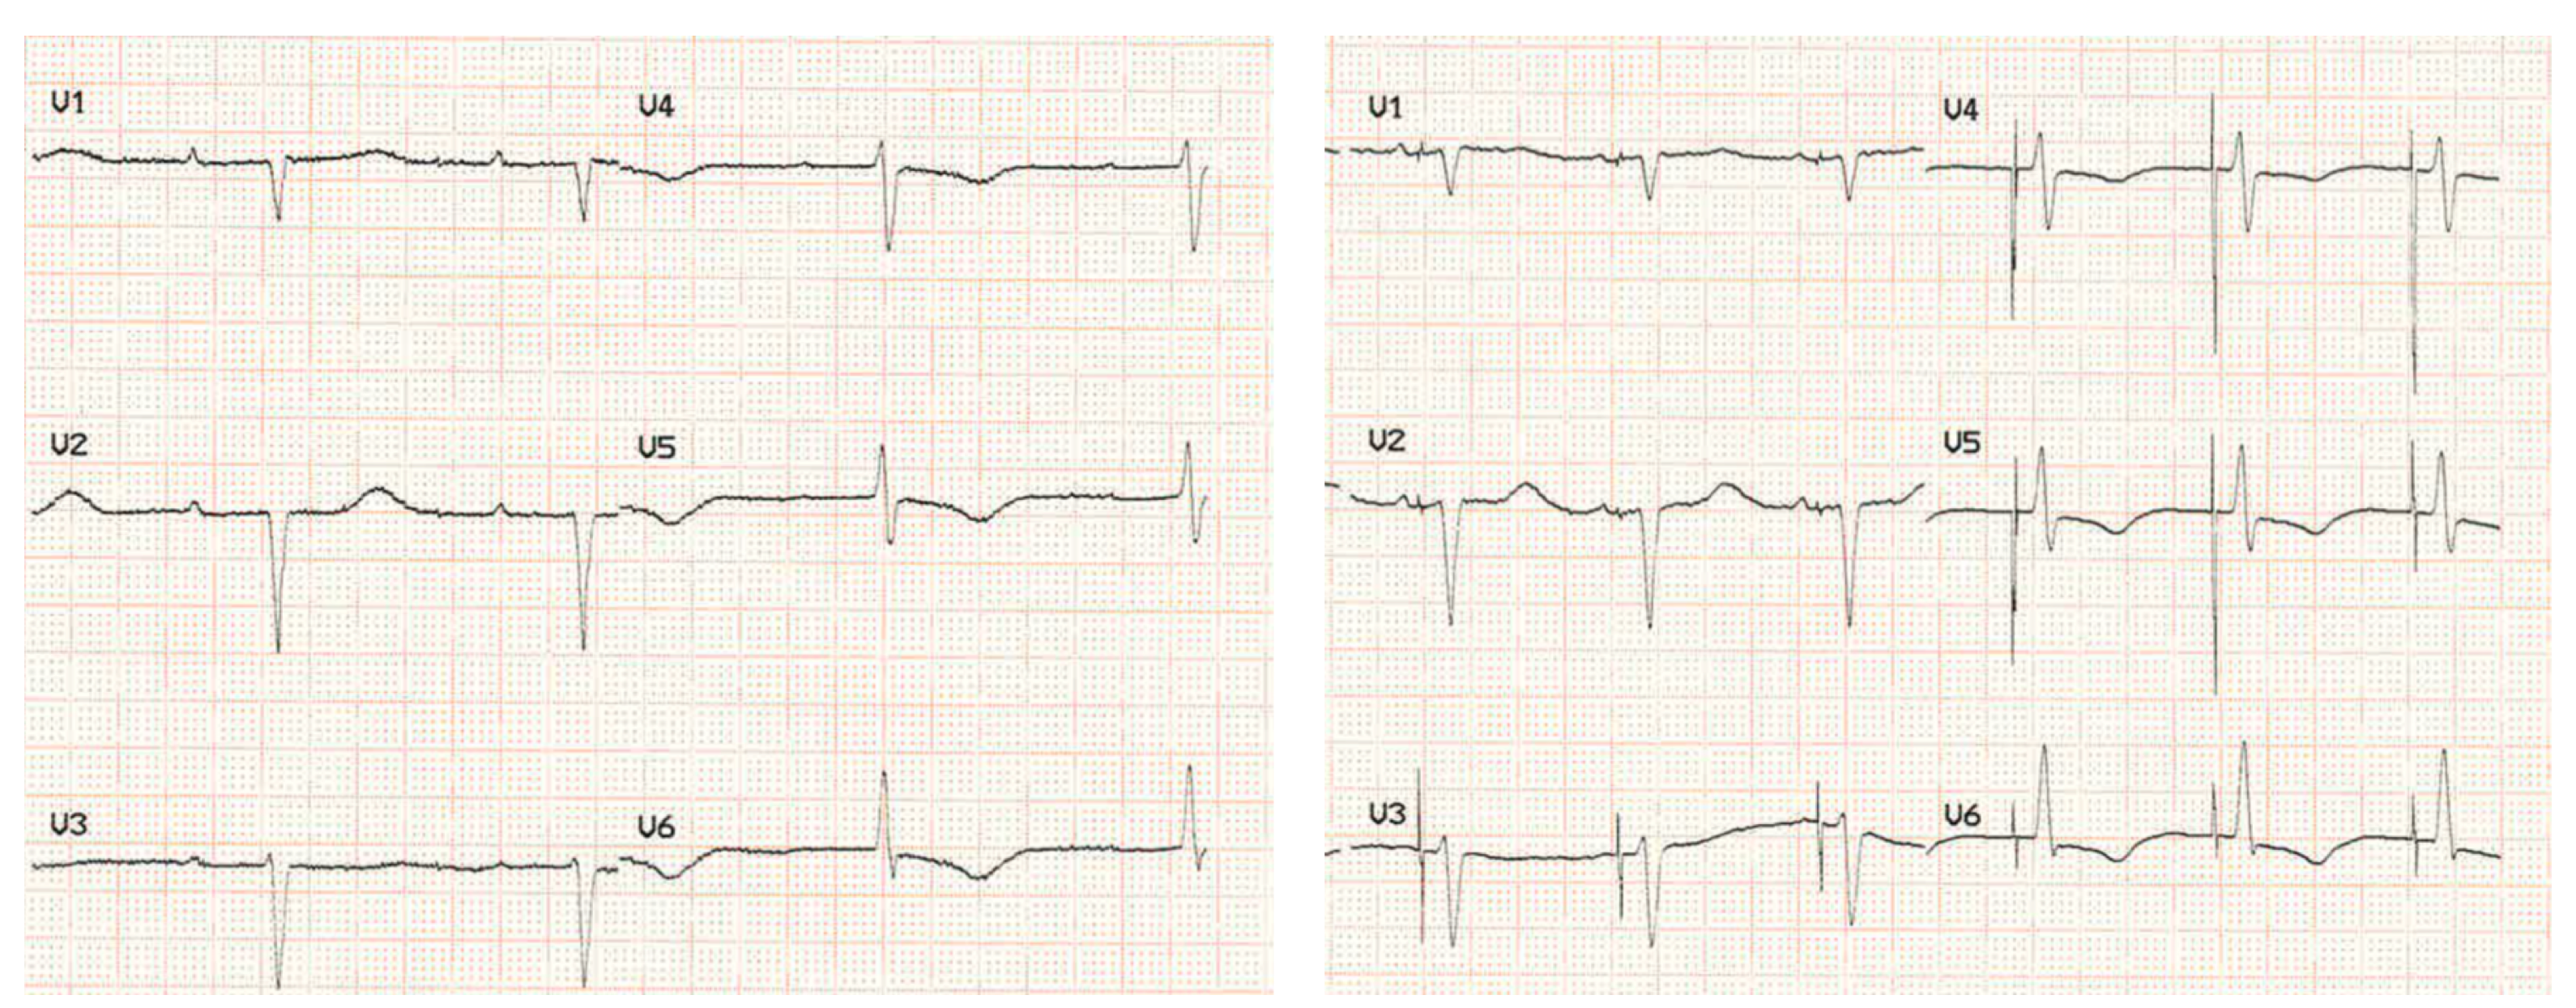 Keene - Pacing: Figure 2. Left: Sinus rhythm with first-degree AV block and narrow QRS. Right: His-bundle pacing maintains the narrow QRS morphology by providing physiological activation of the ventricles